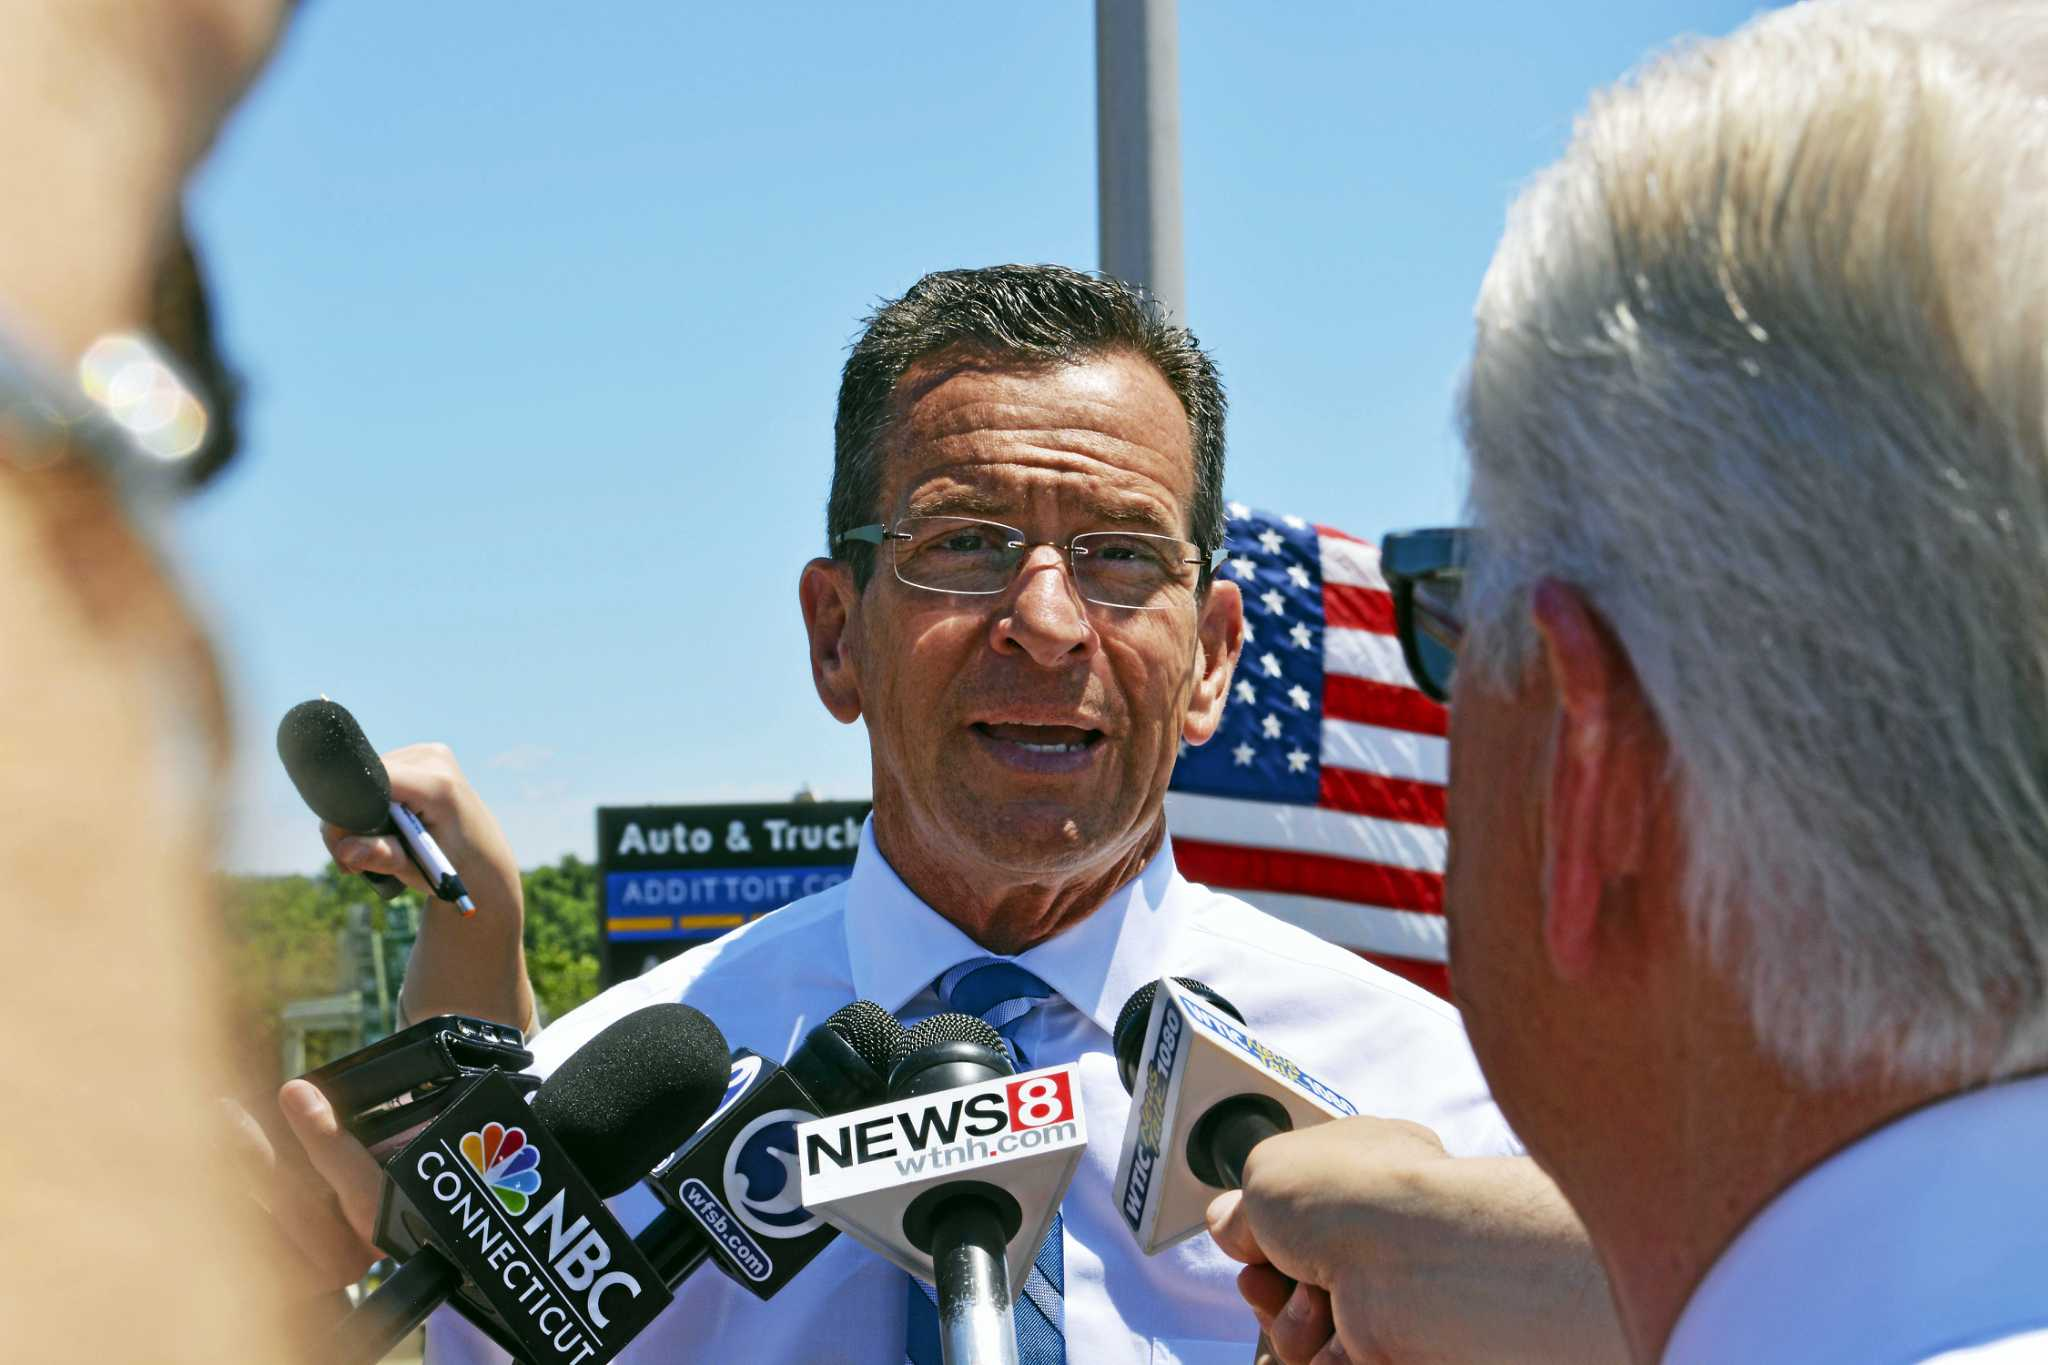 Malloy's plan would remove traffic lights from Route 9 in